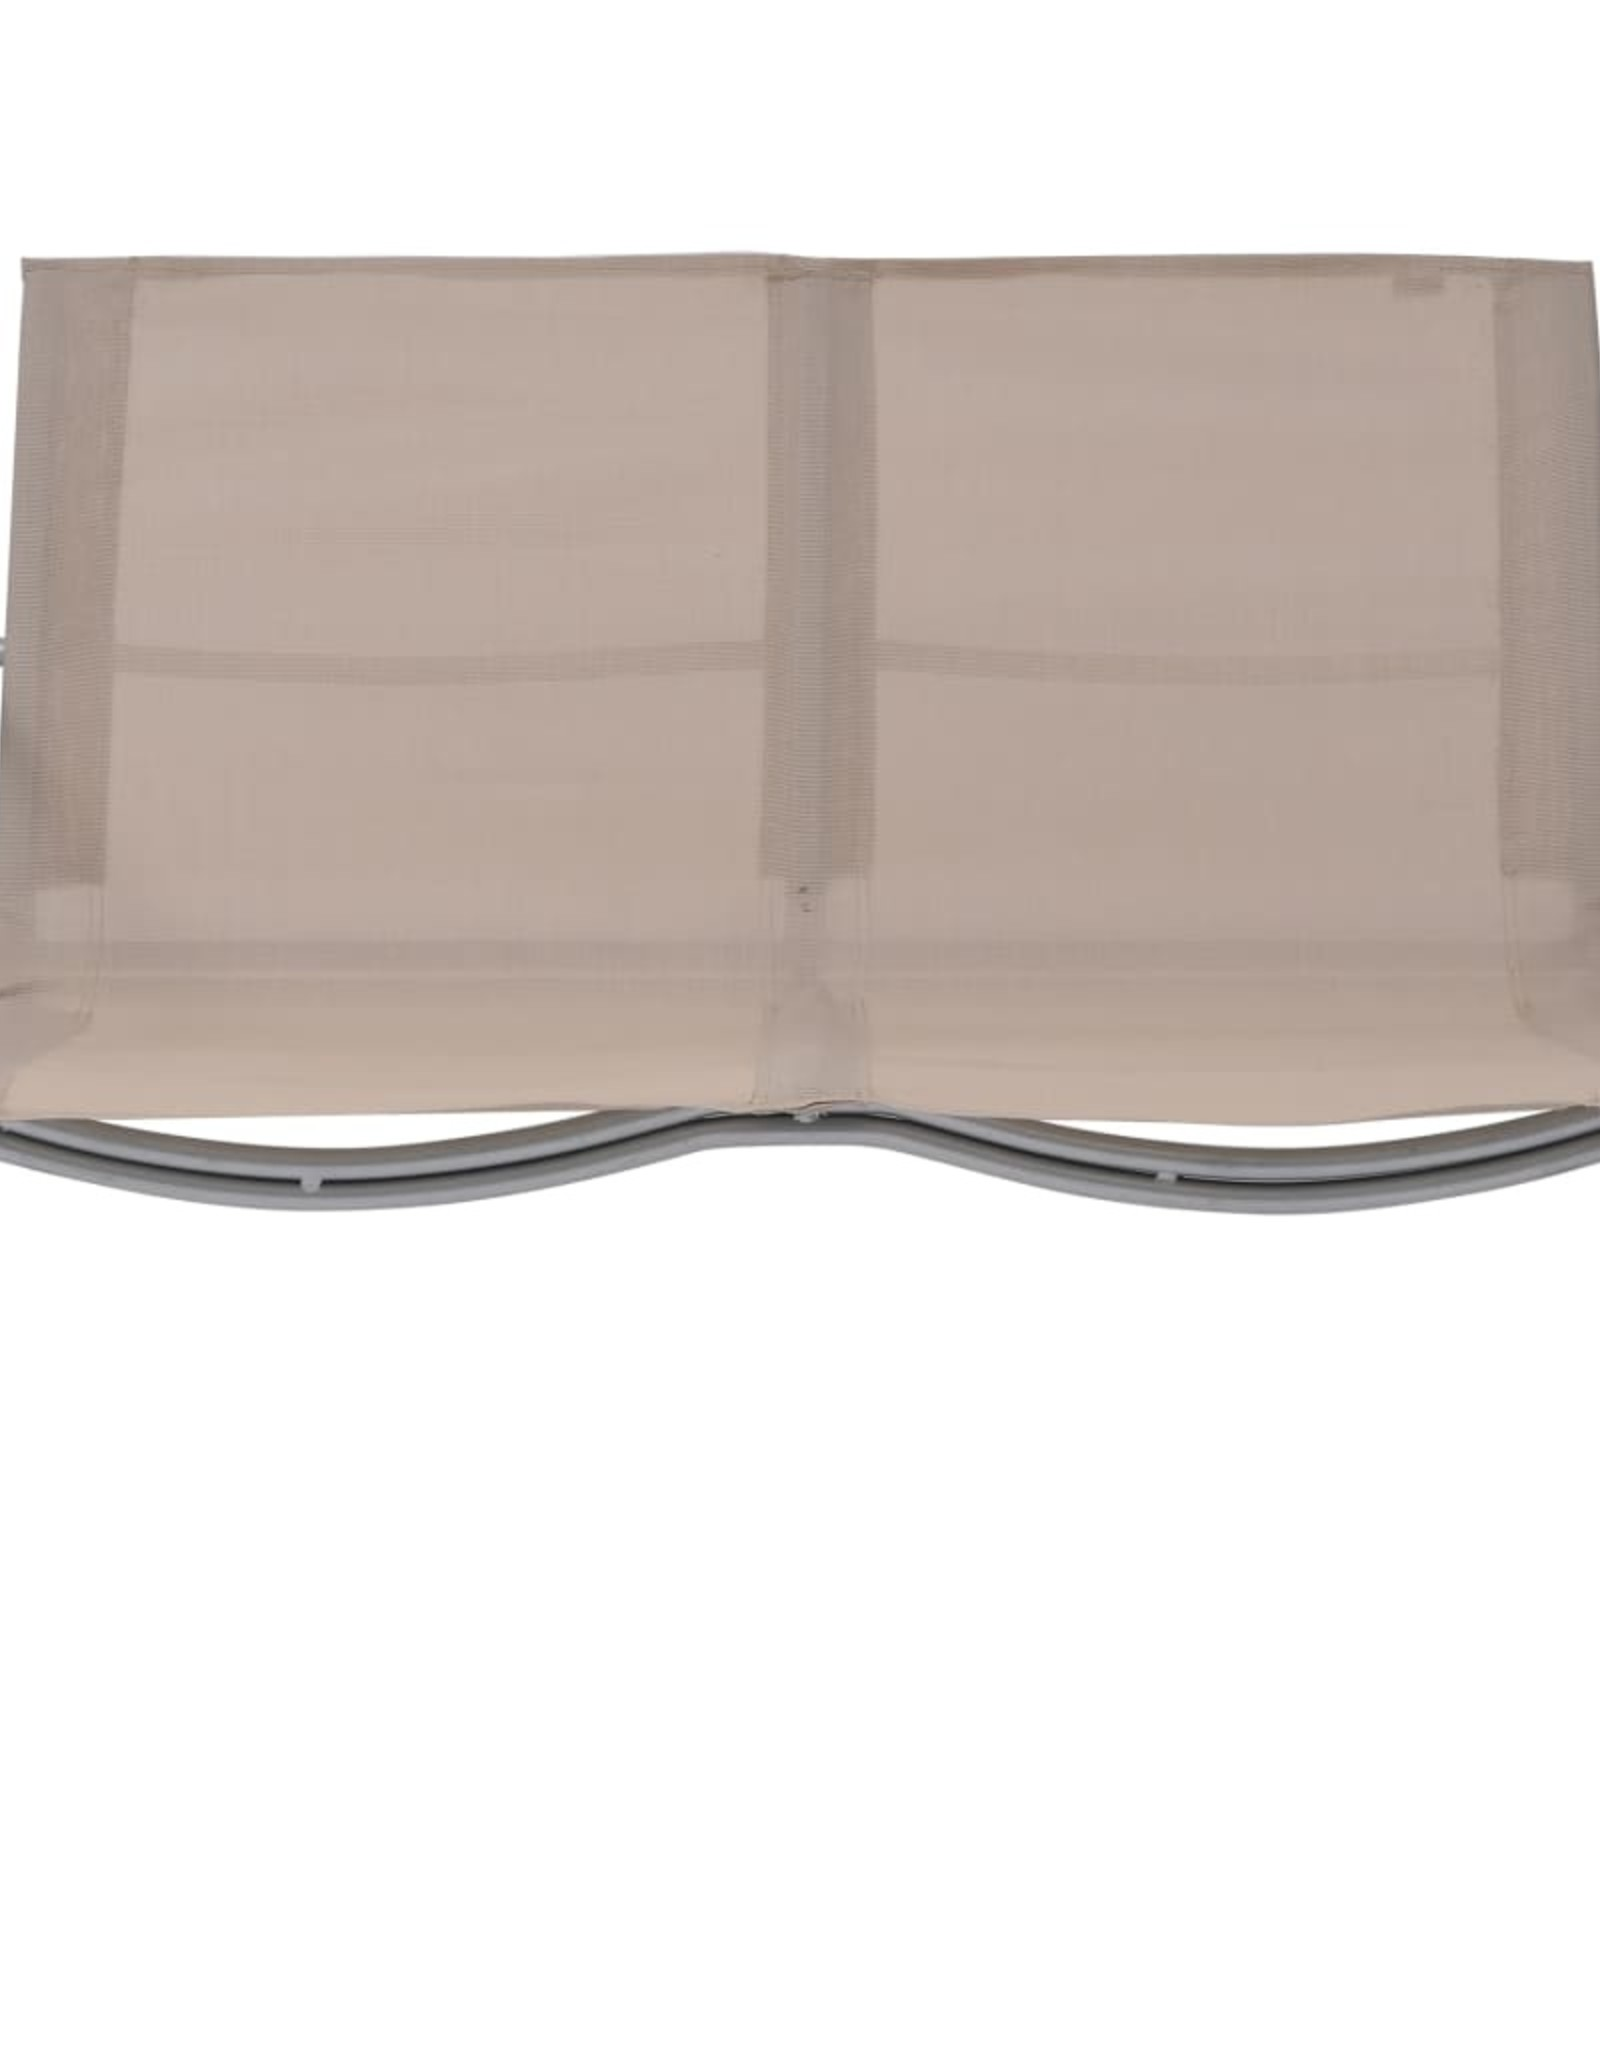 4-delige Loungeset stof en staal taupe